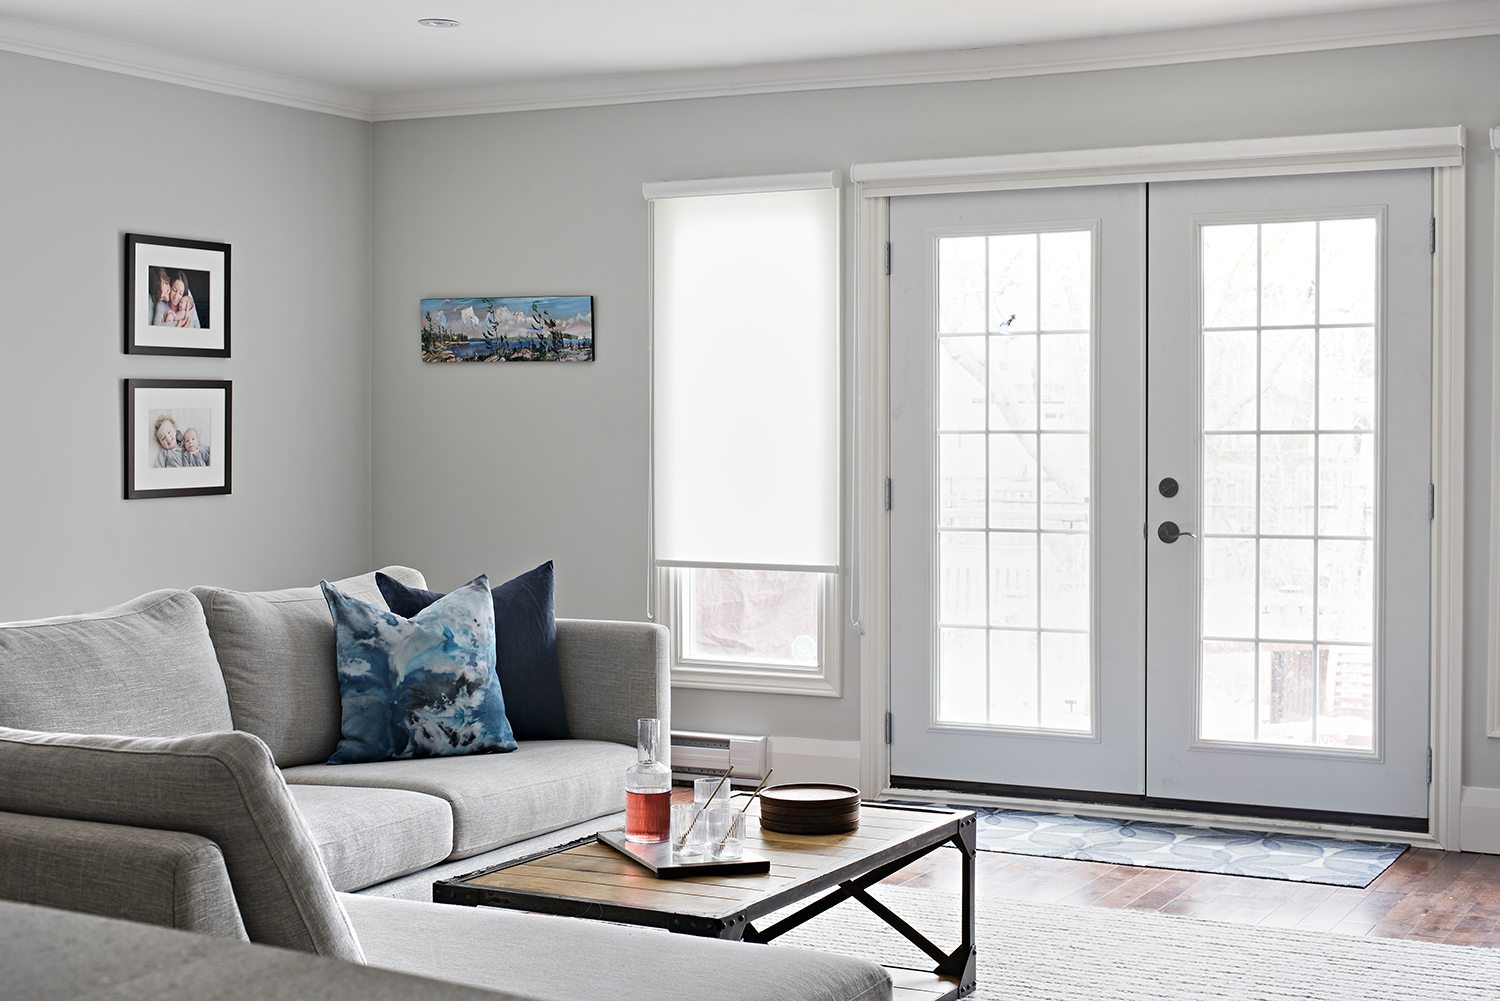 Bright living room area with large couch and french doors